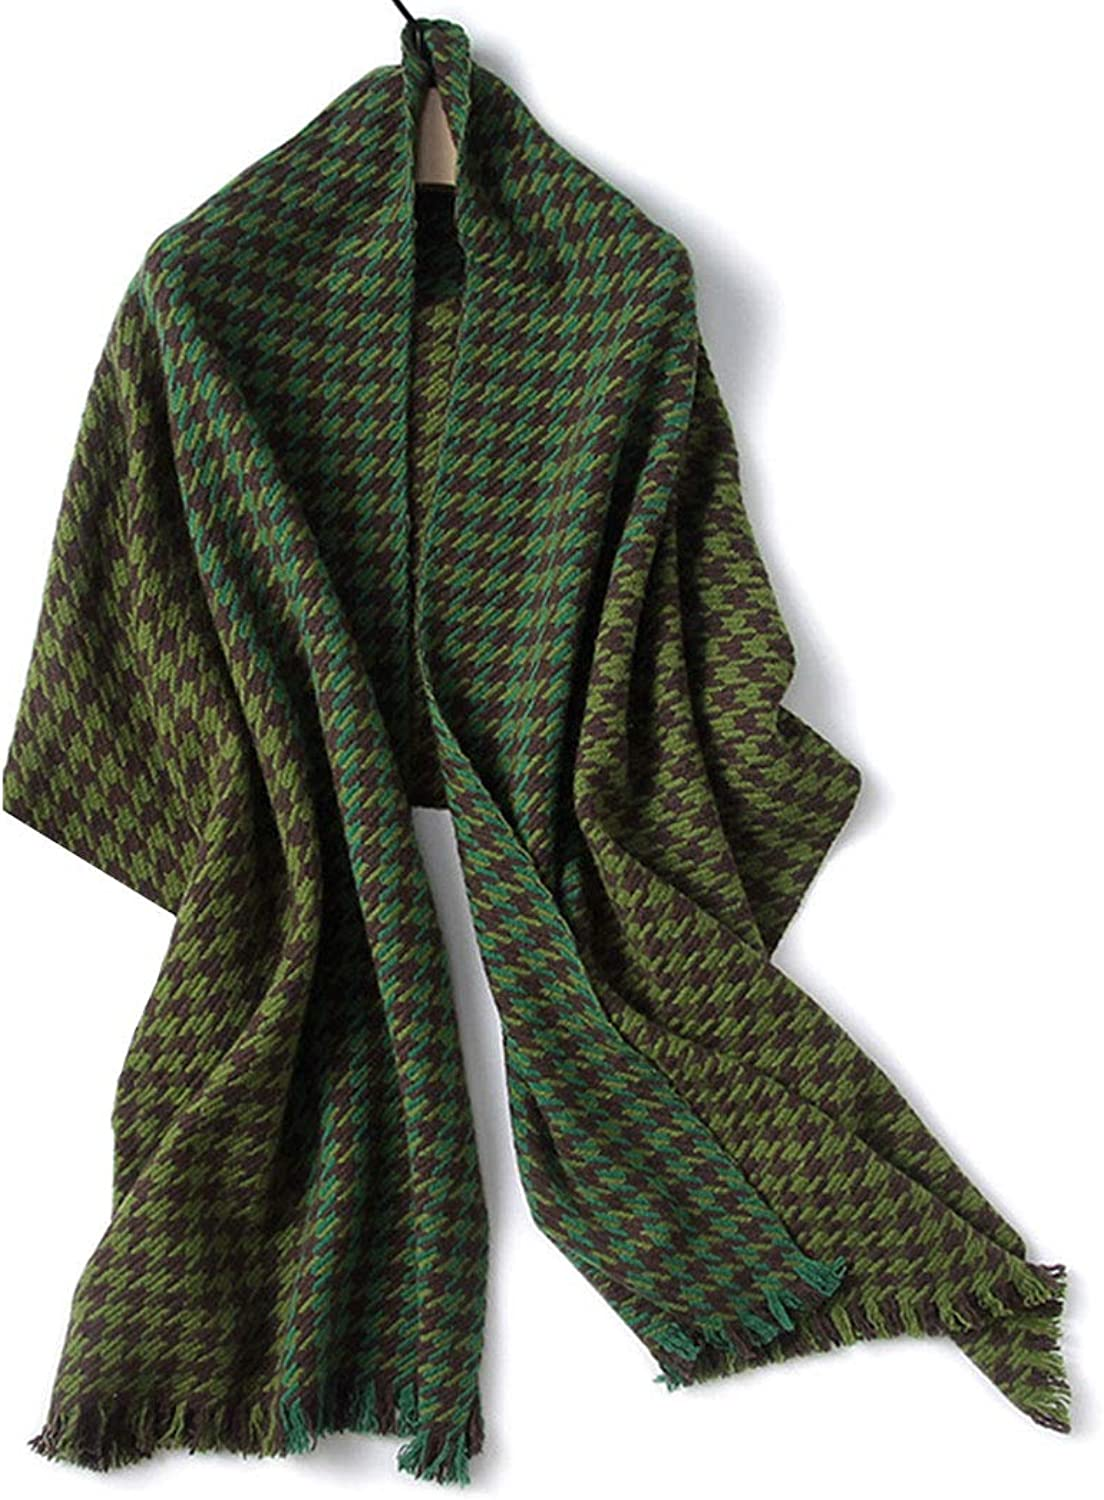 HUIFANG Female Autumn and Winter European and American Style Wool Shawl Thick Warm Wild Green Brown Houndstooth Scarf 60  200CM A (color   Green, Size   60  200CM)